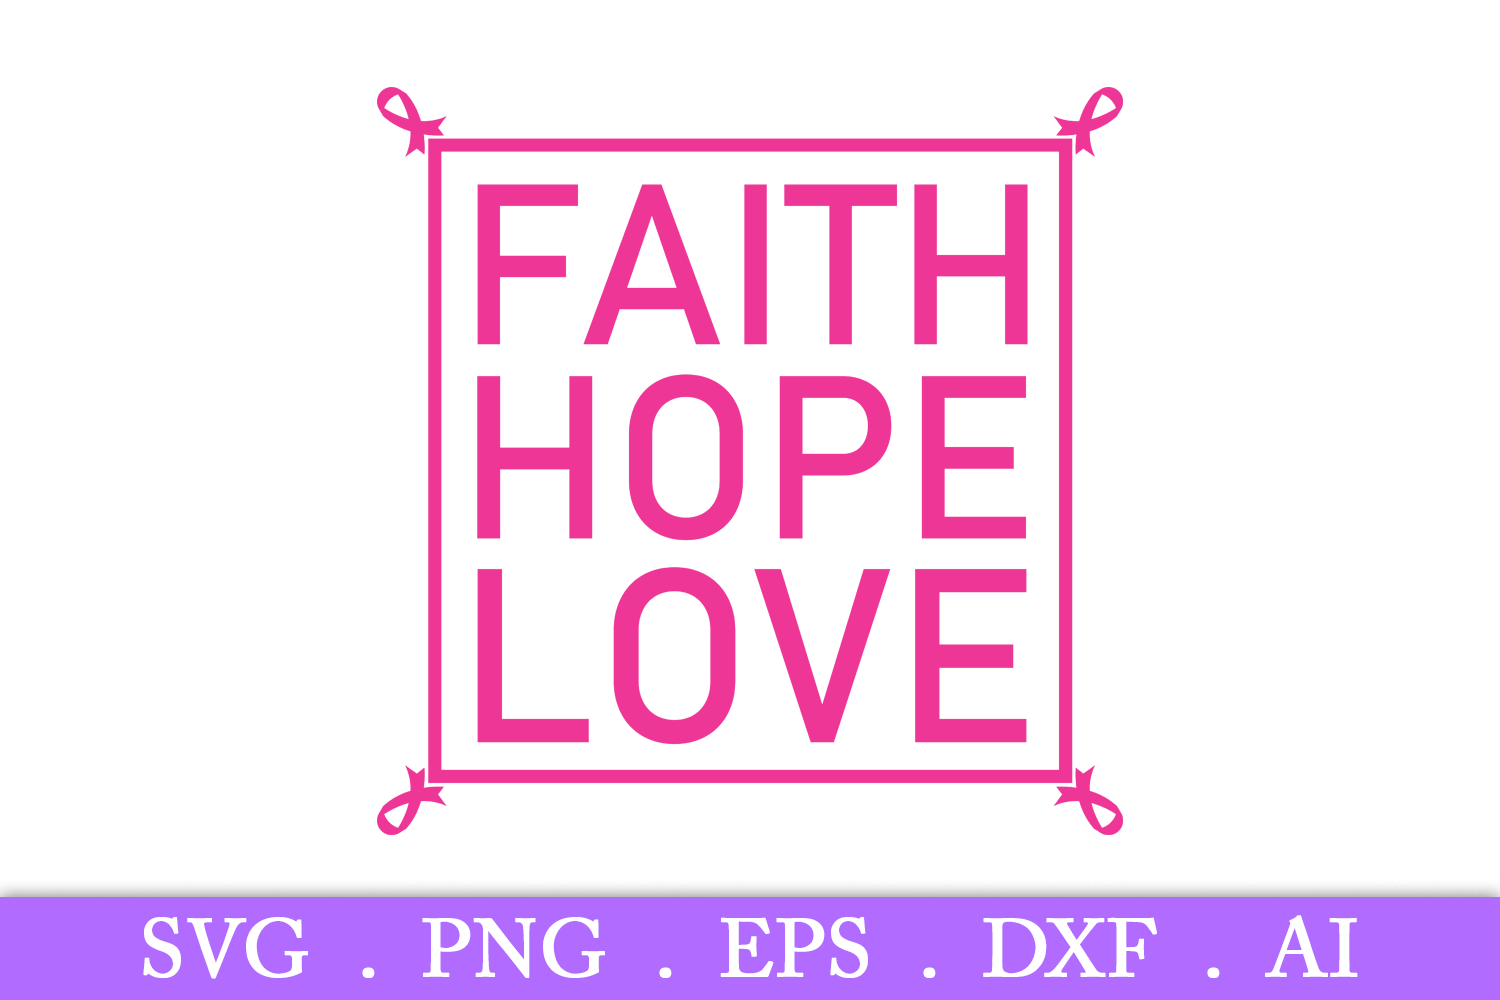 SALE! Faith Hope Love svg, breast cancer svg, cancer ribbon example image 2